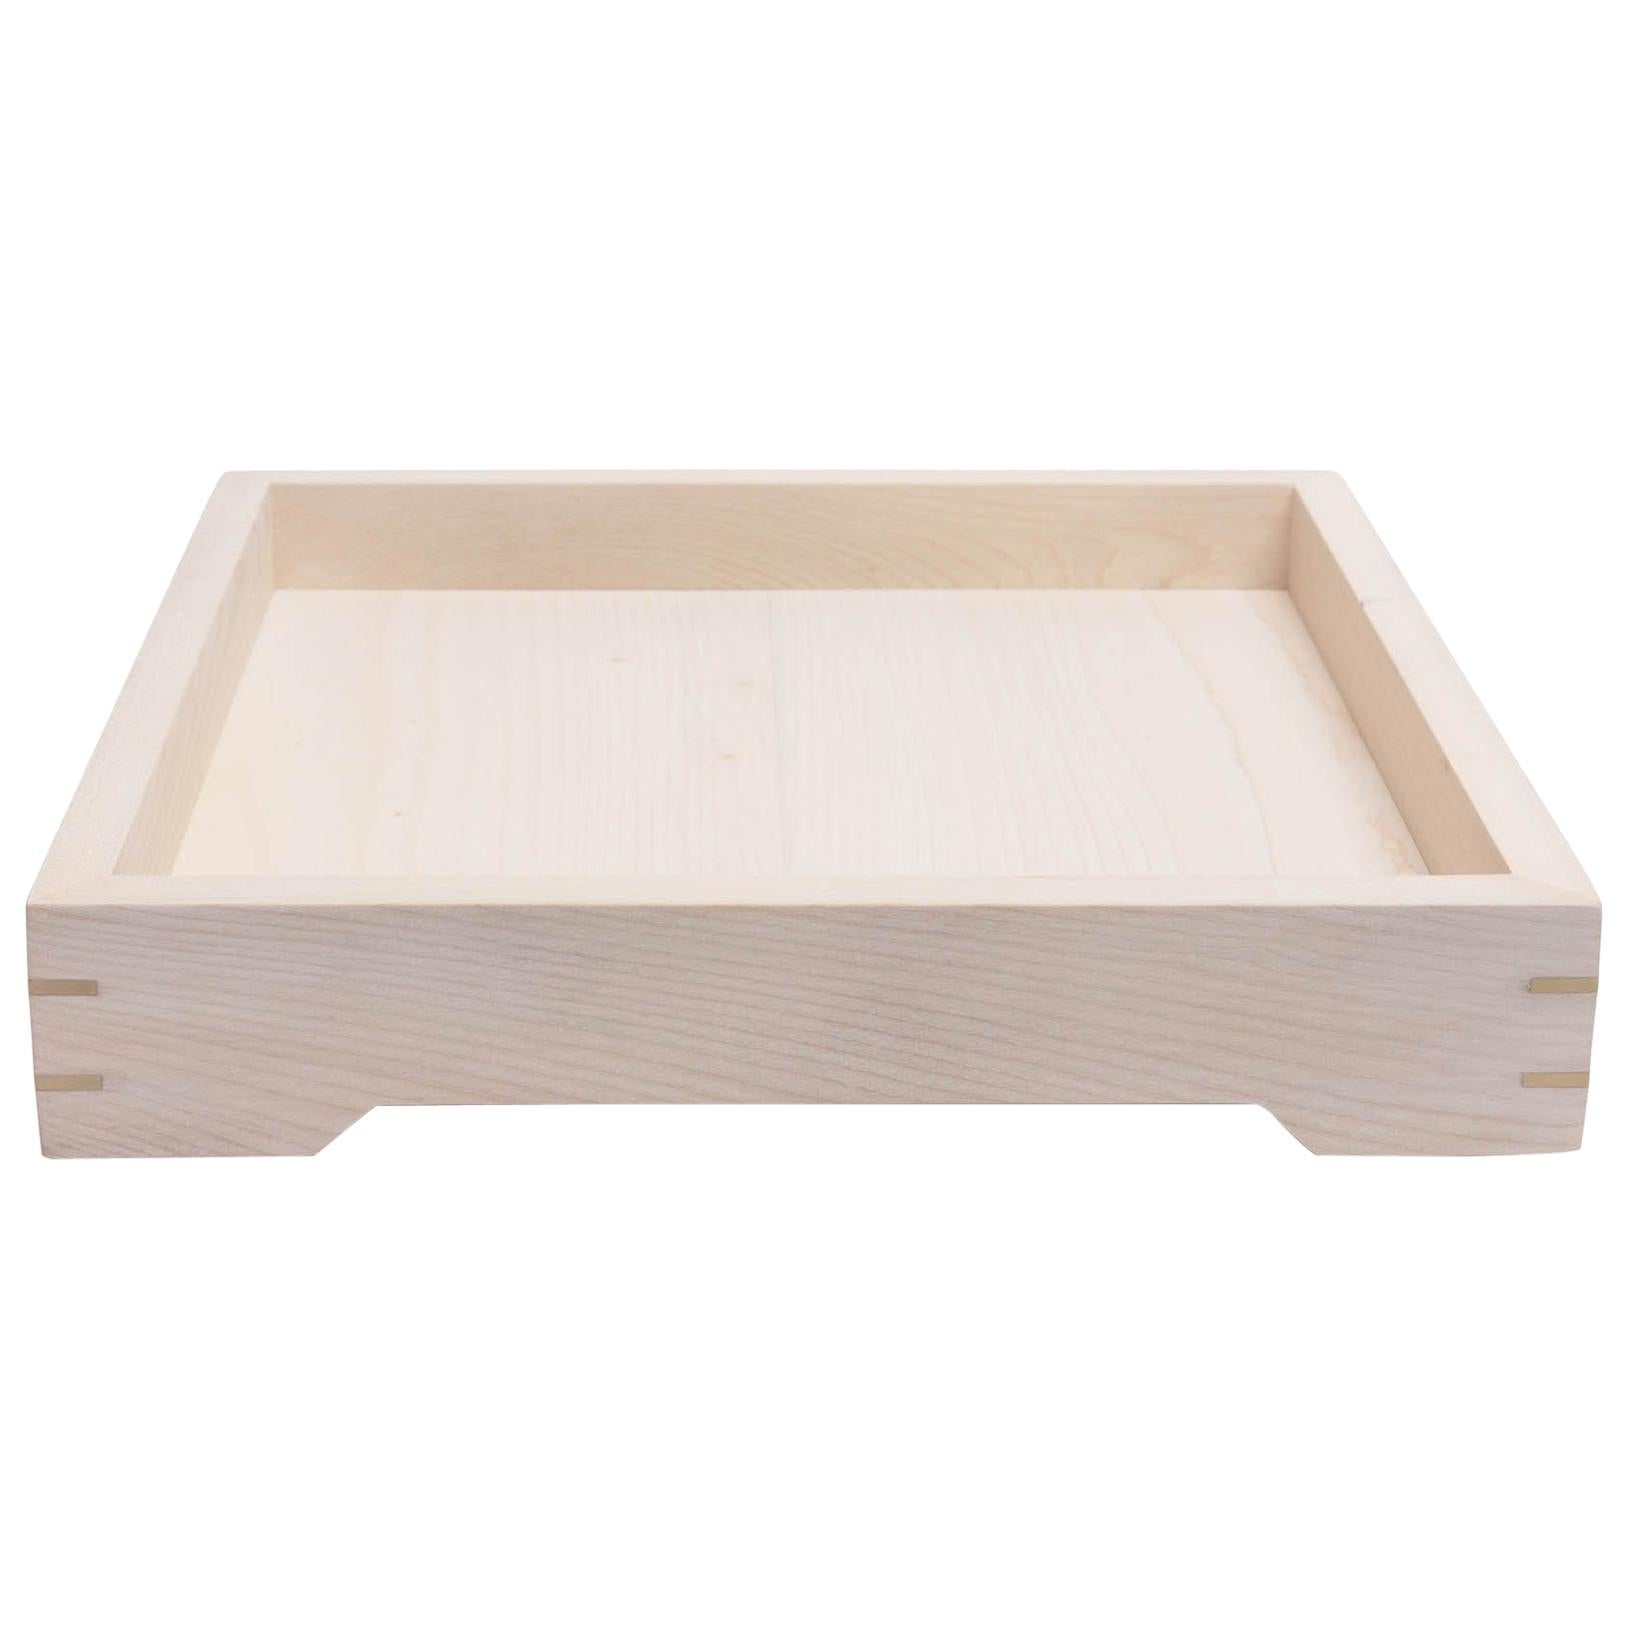 White Magnolia Wood and Brass Small Serving Tray by Alabama Sawyer